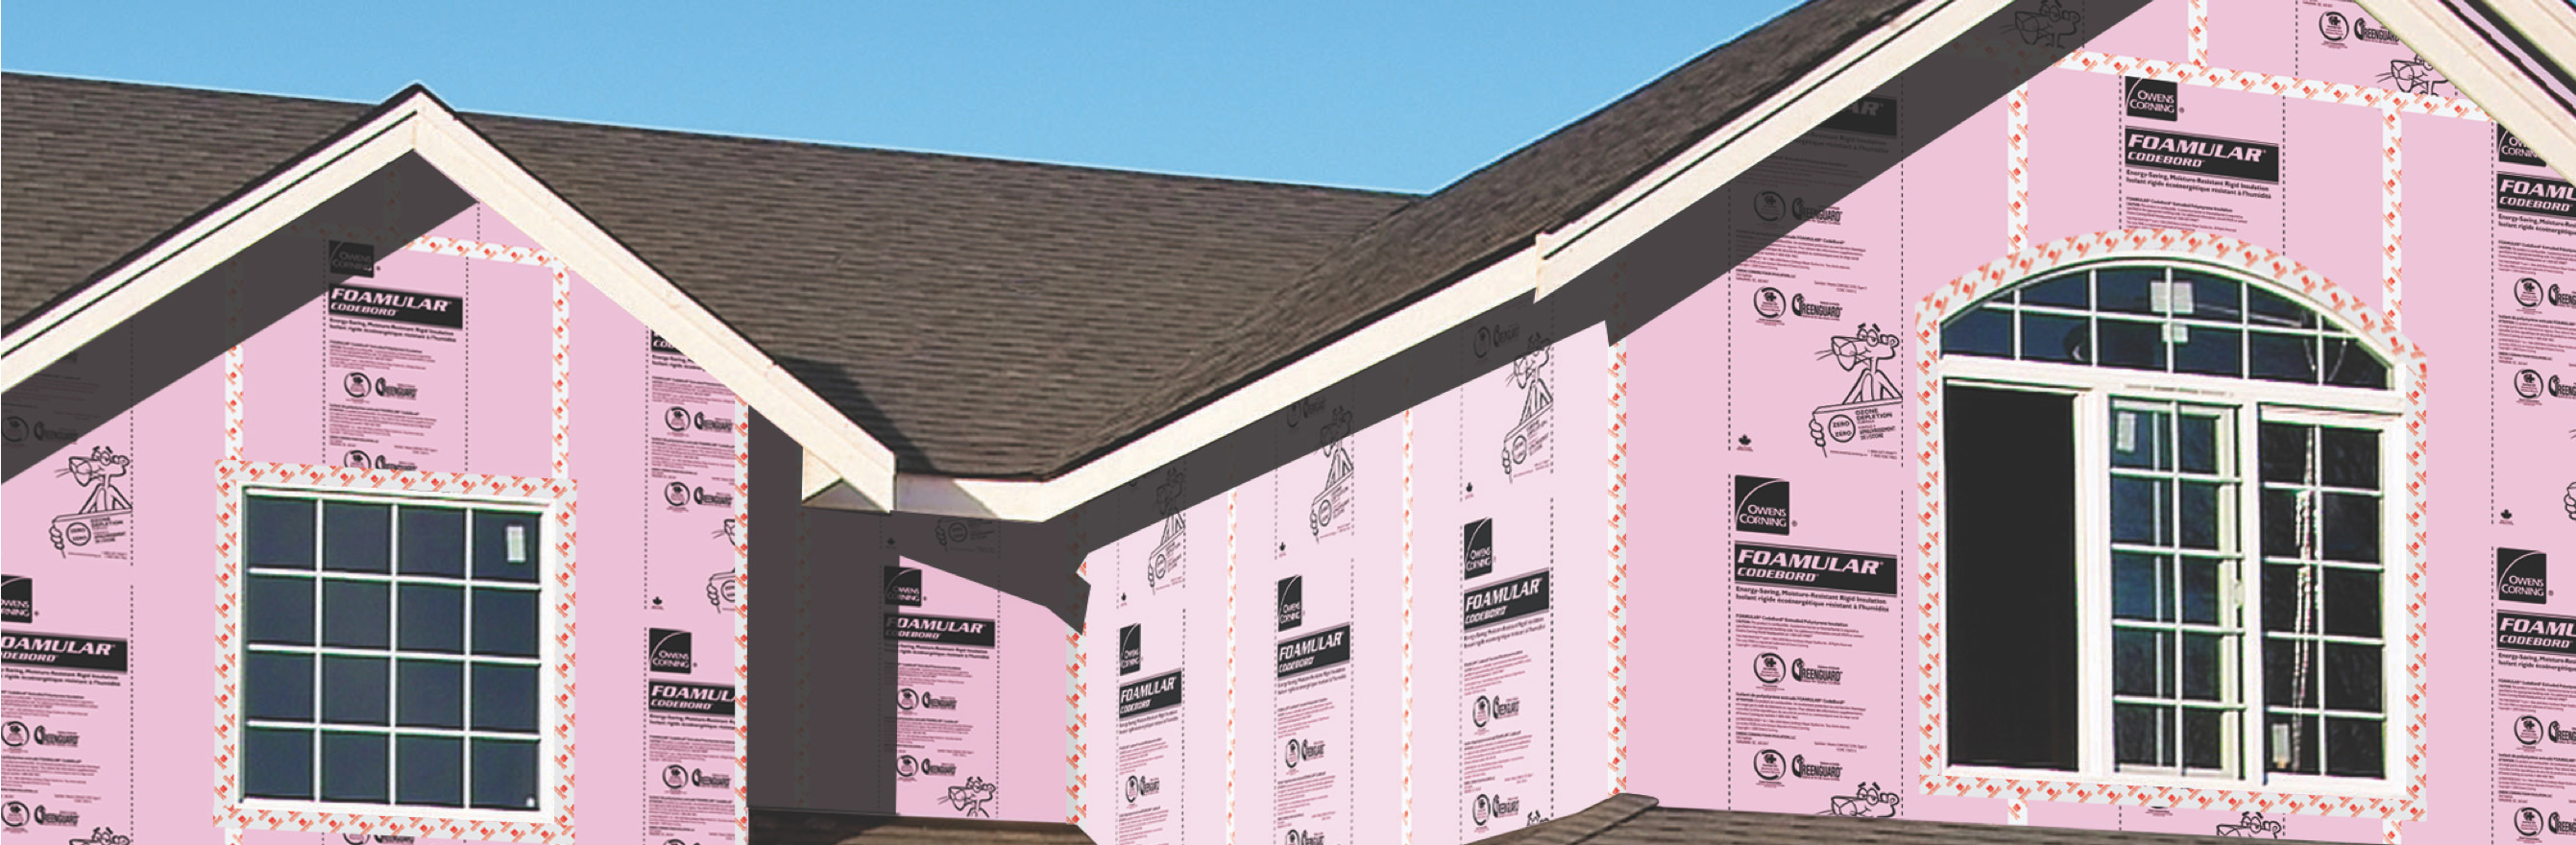 house covered in CodeBord® Air Barrier System